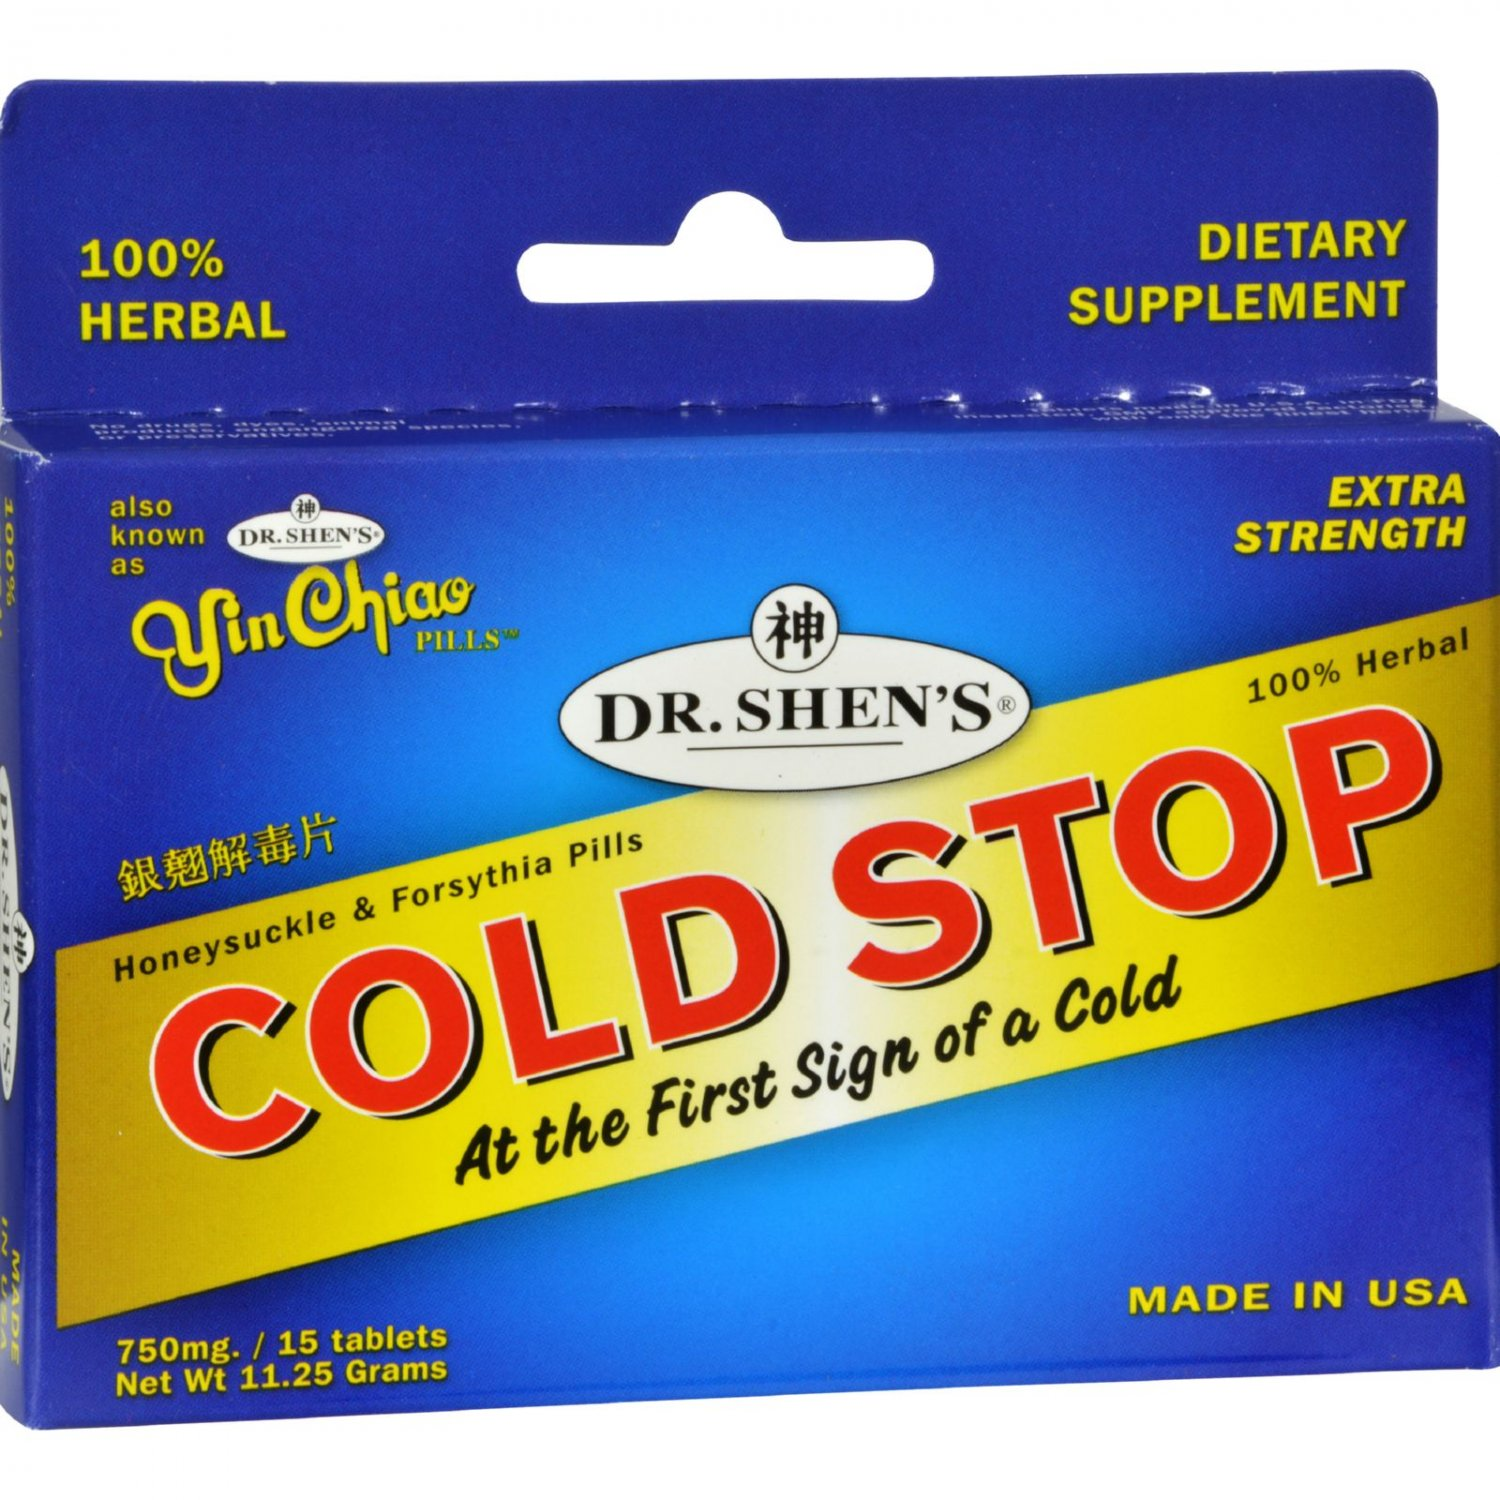 Dr. Shen's Yin Chiao Coldstop Cold or Flu - 15 Tablets